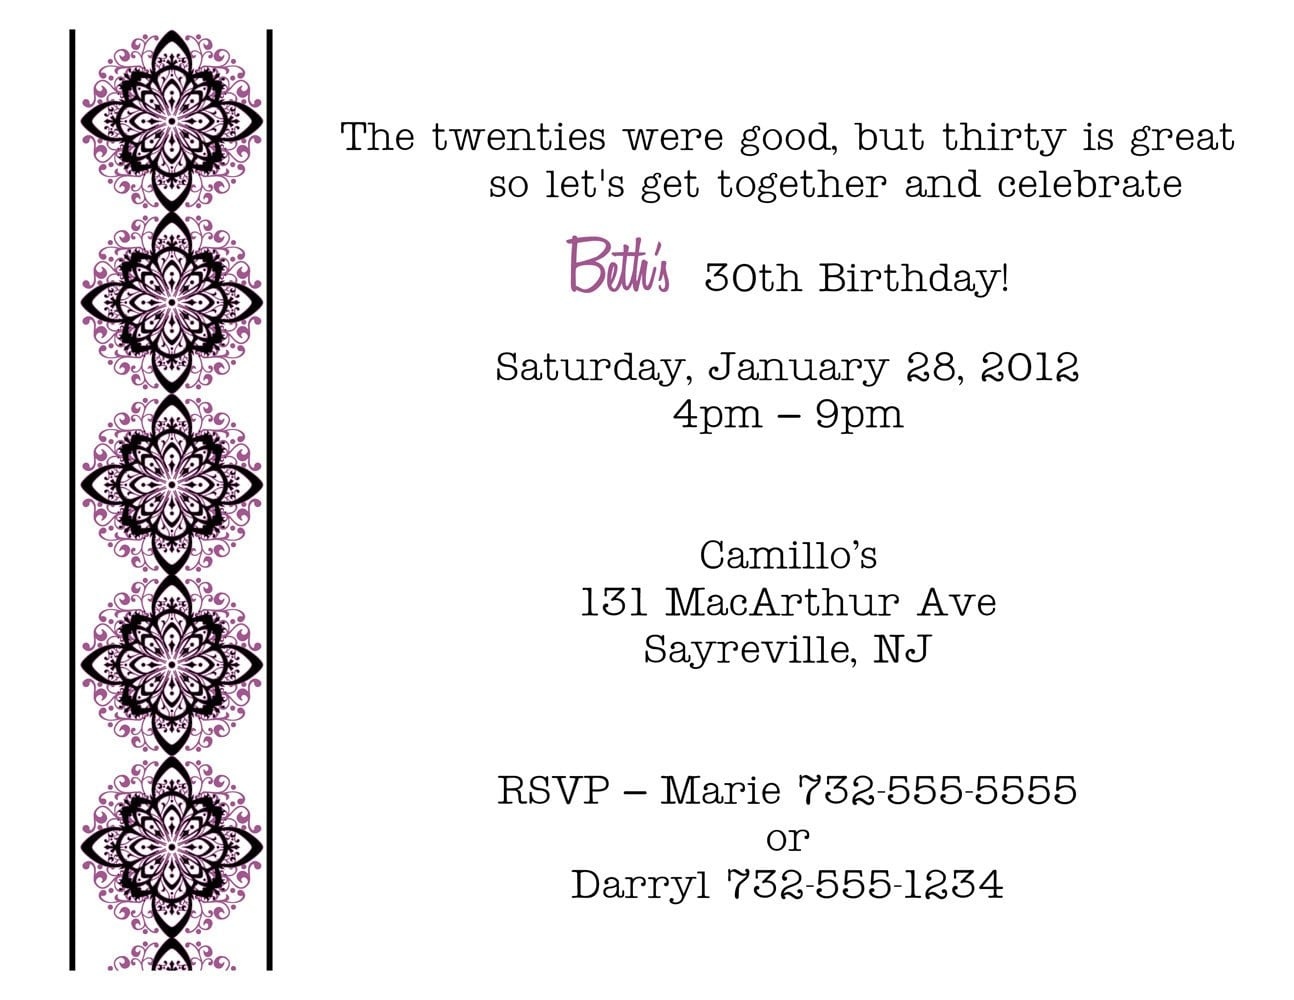 Reception Party Invitations - Mickey Mouse Invitations Templates